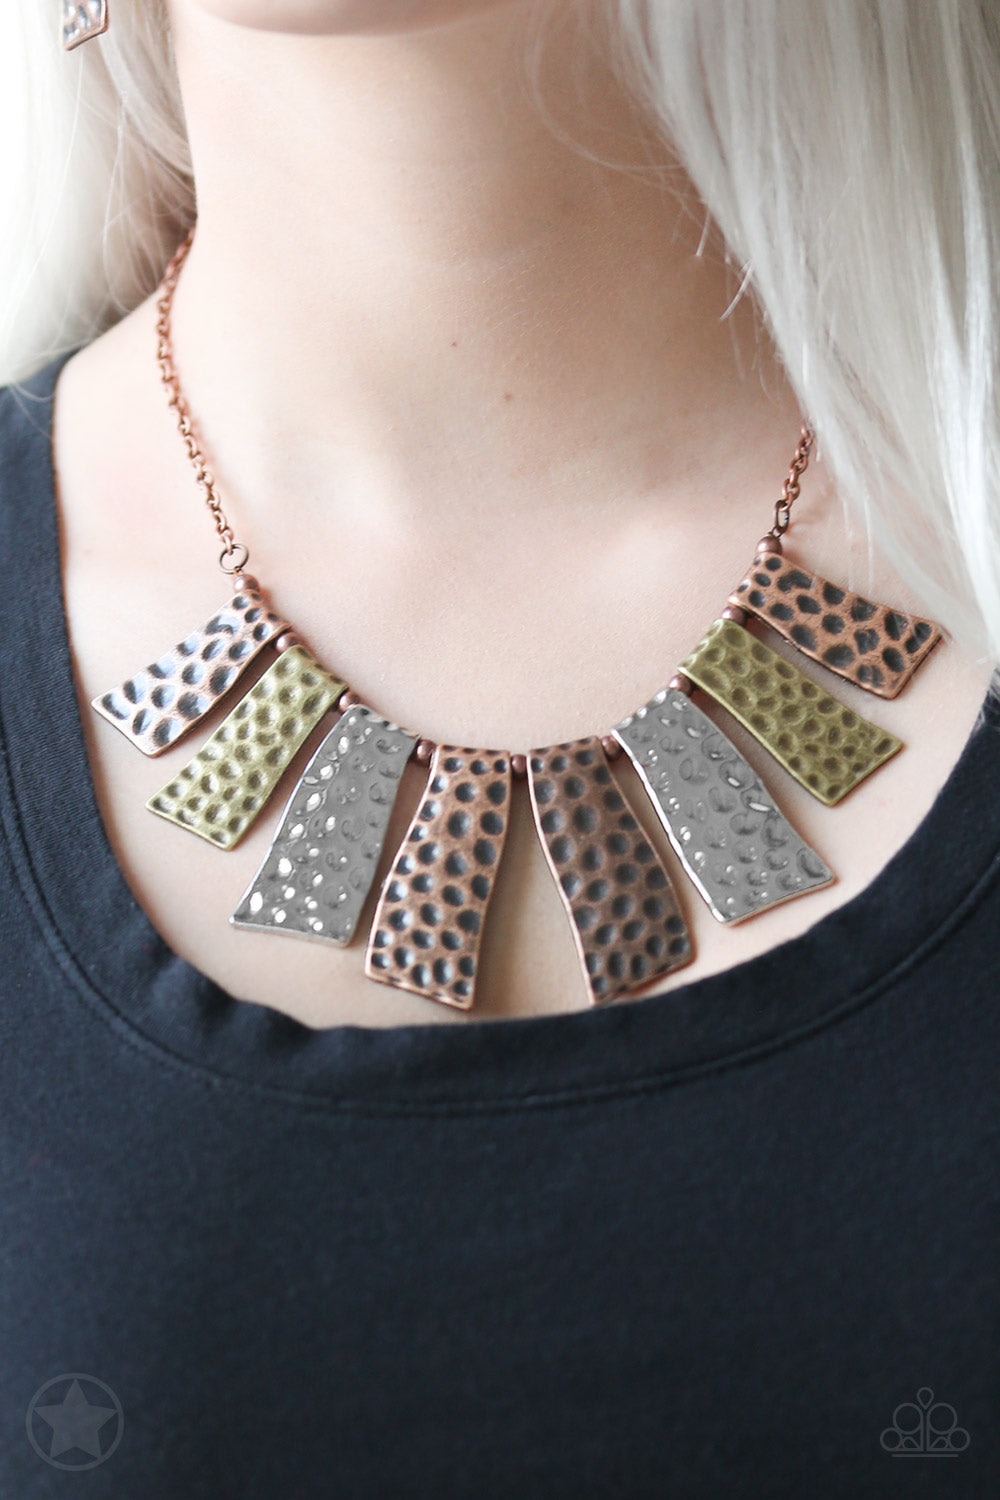 A Fan of the Tribe - Paparazzi necklace